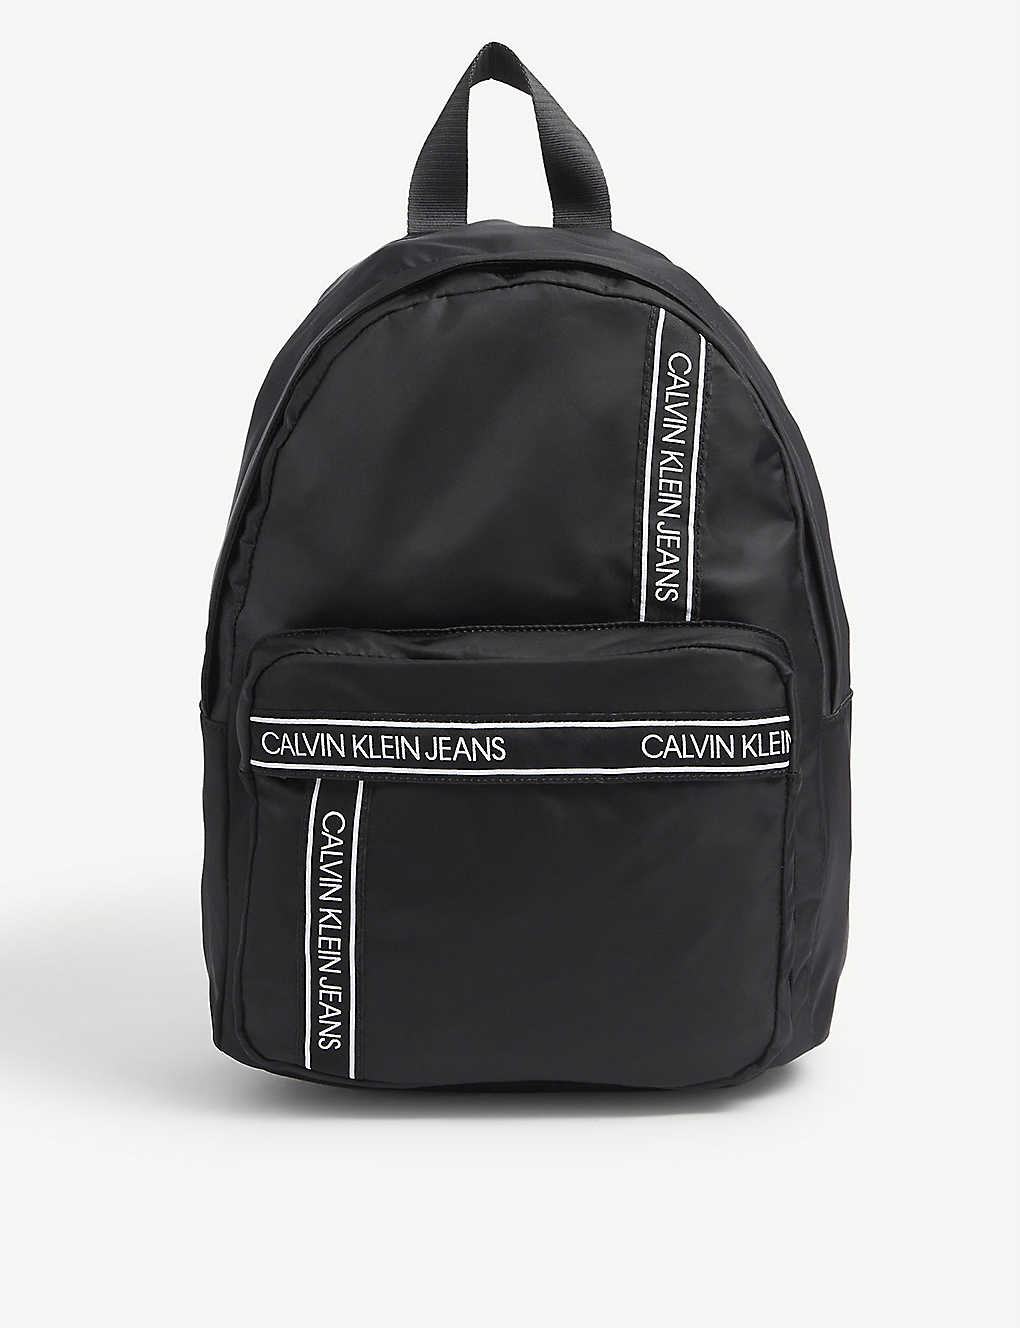 CALVIN KLEIN JEANS: Kids tape-logo nylon backpack